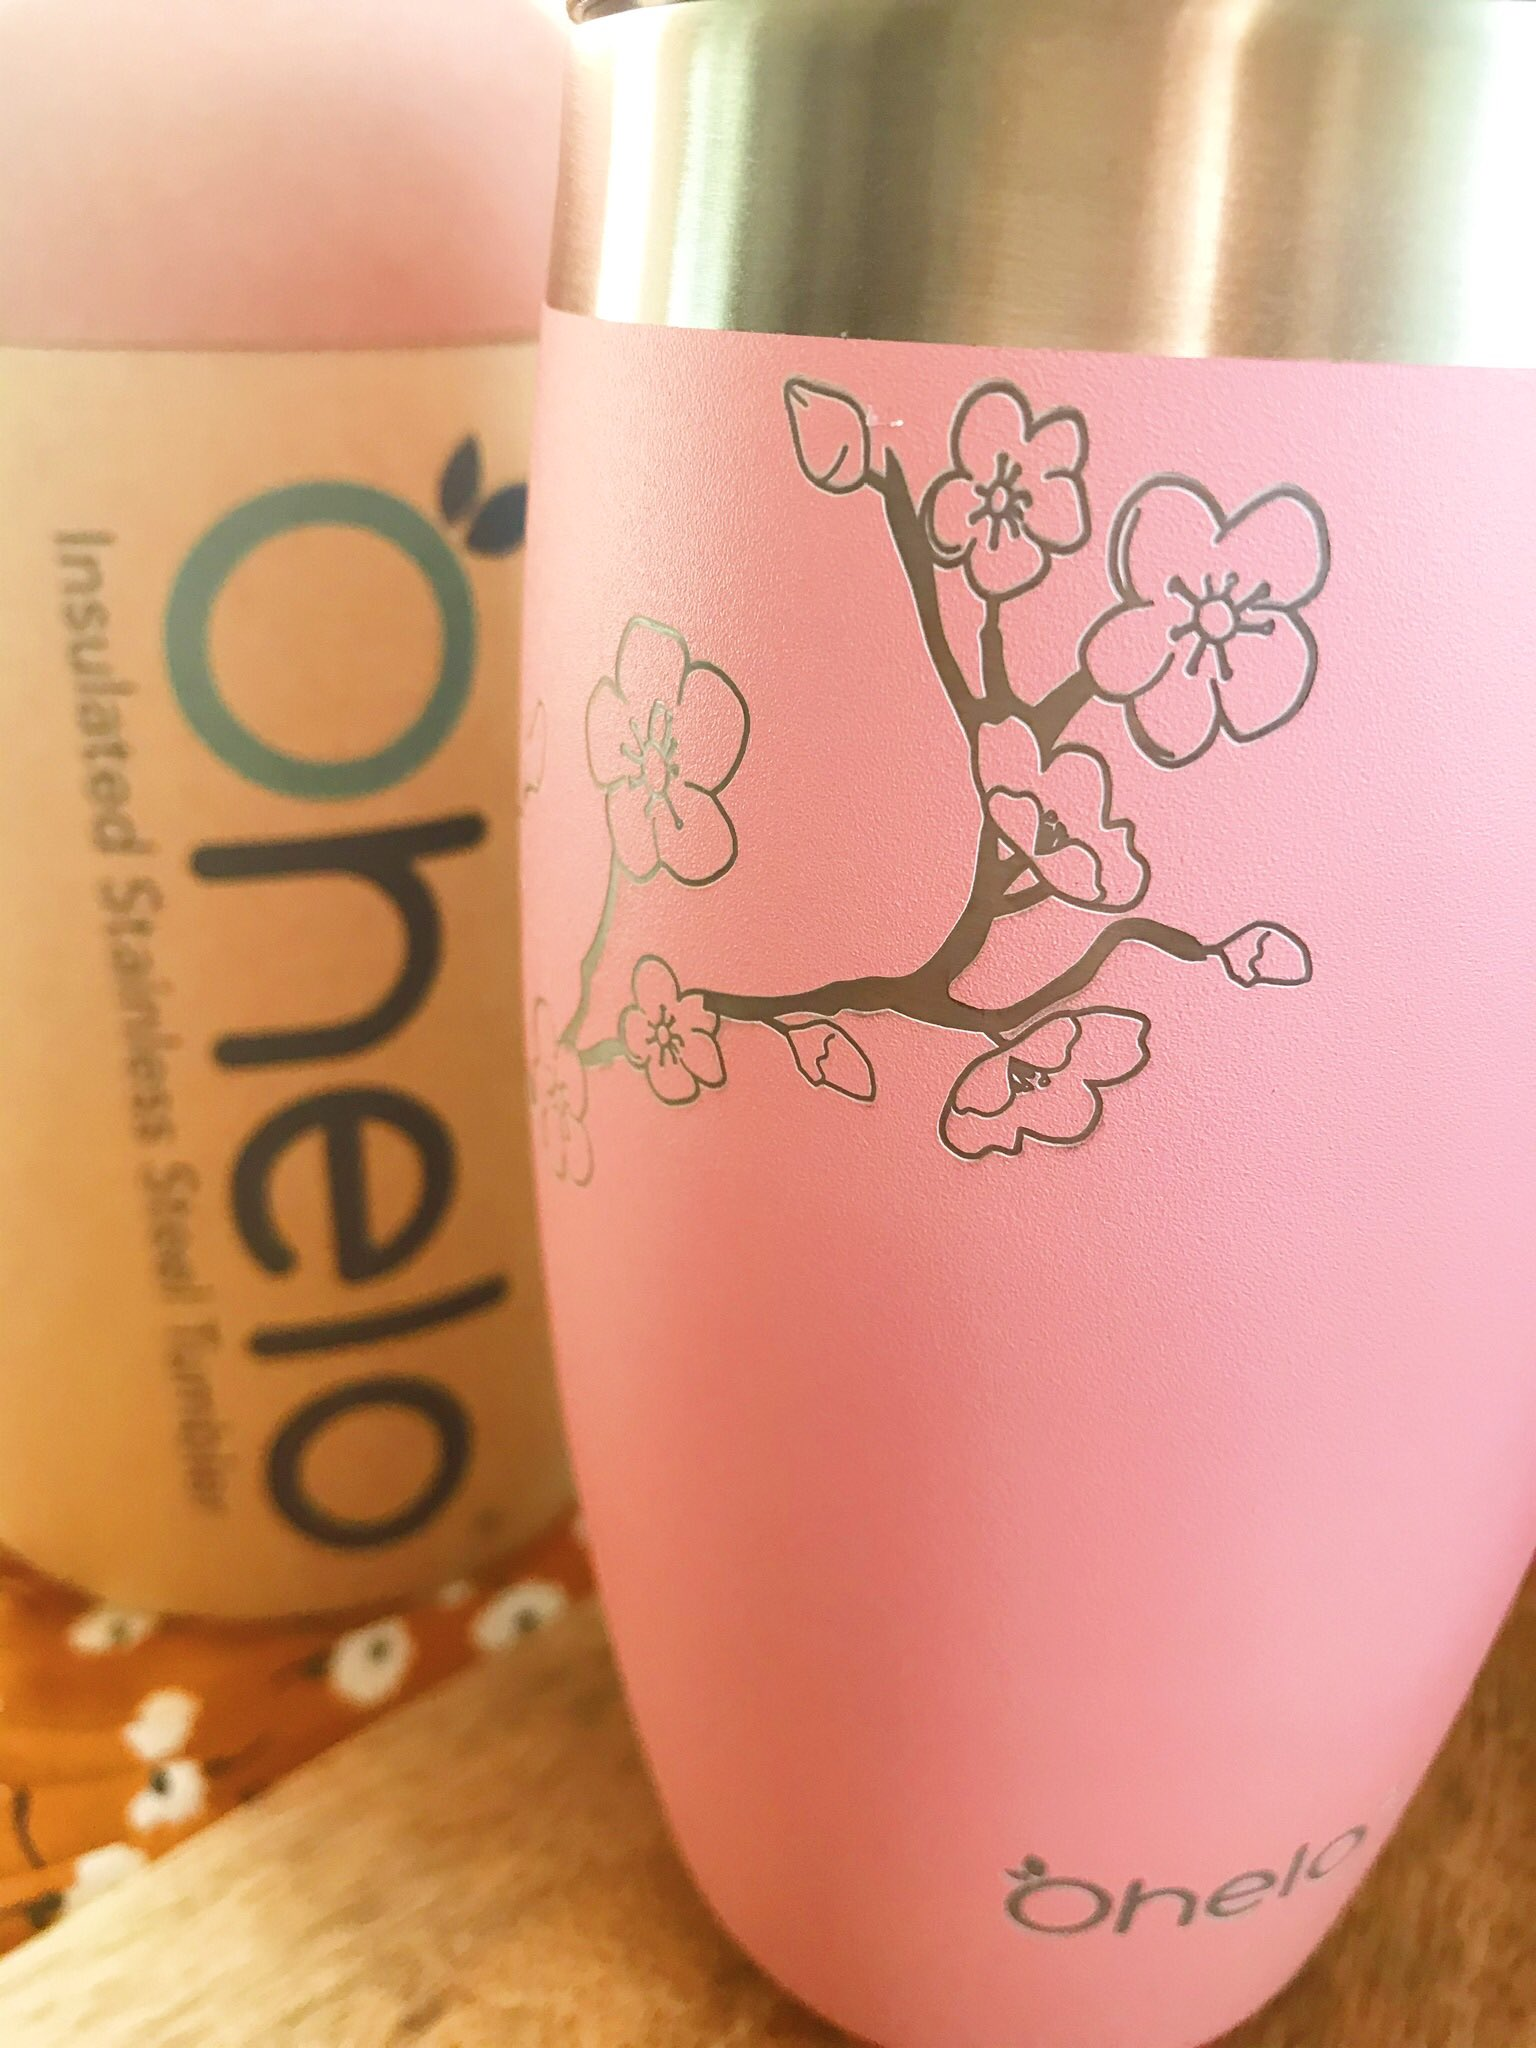 Ohelo Pink Blossom Travel Cup stood up with packaging in background